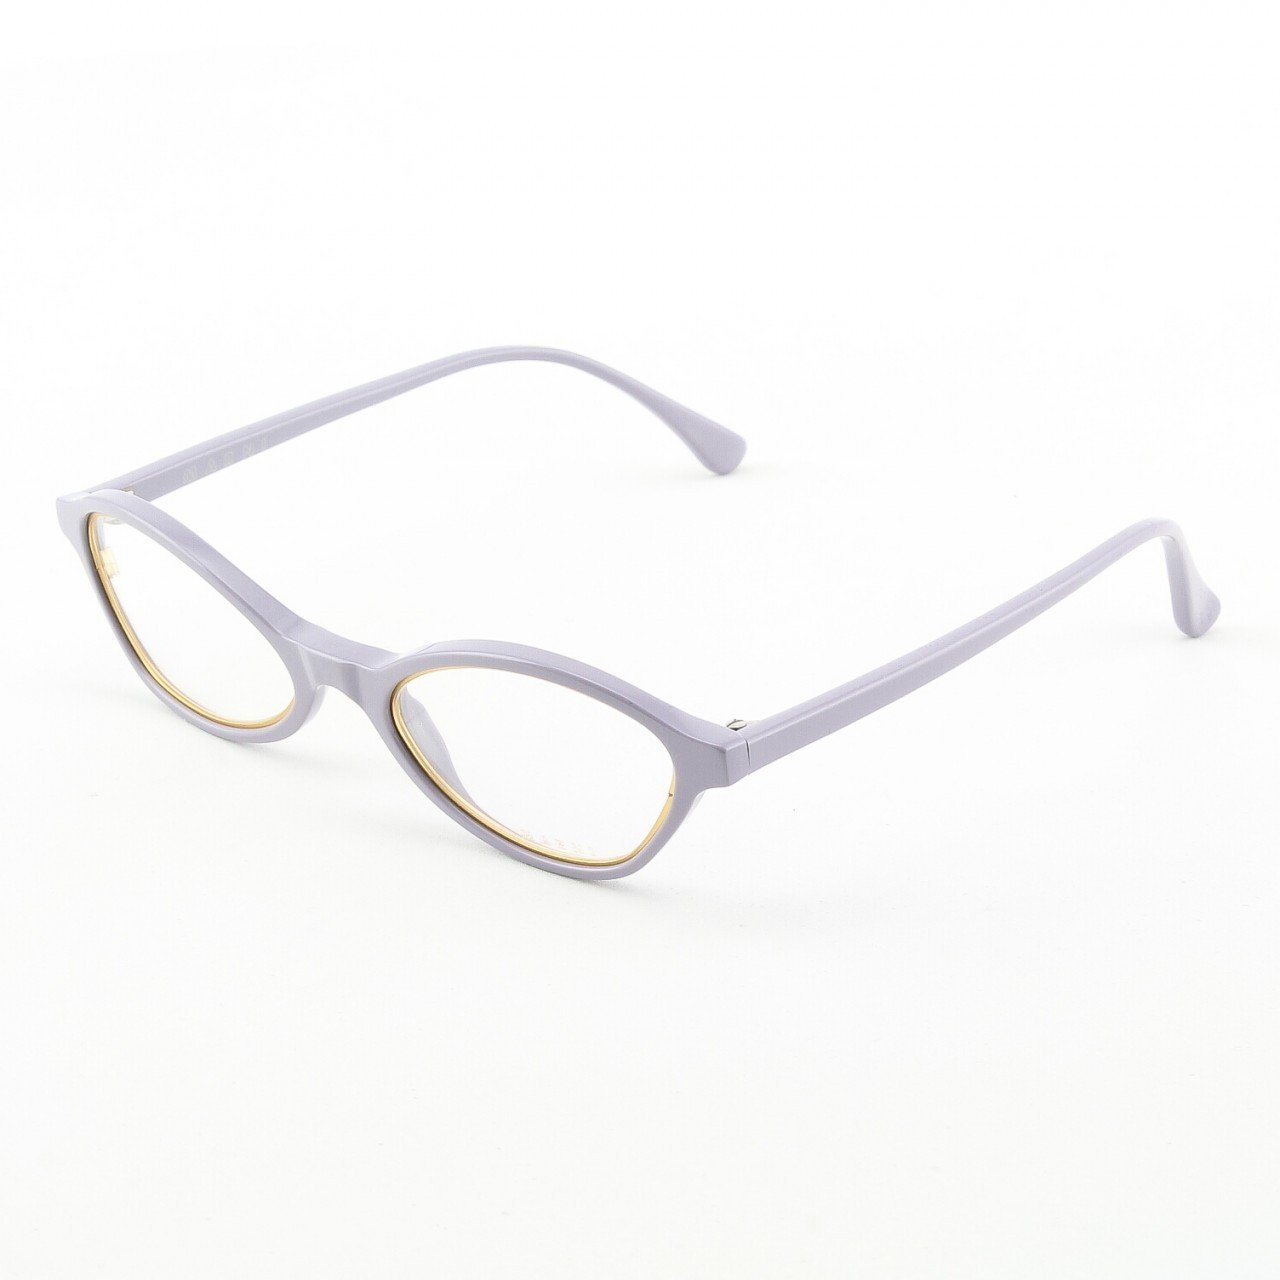 Marni MA648S Eyeglasses Col. 10 Lavendar High Gloss Enamel Frame with Gold Accents and Clear Lenses